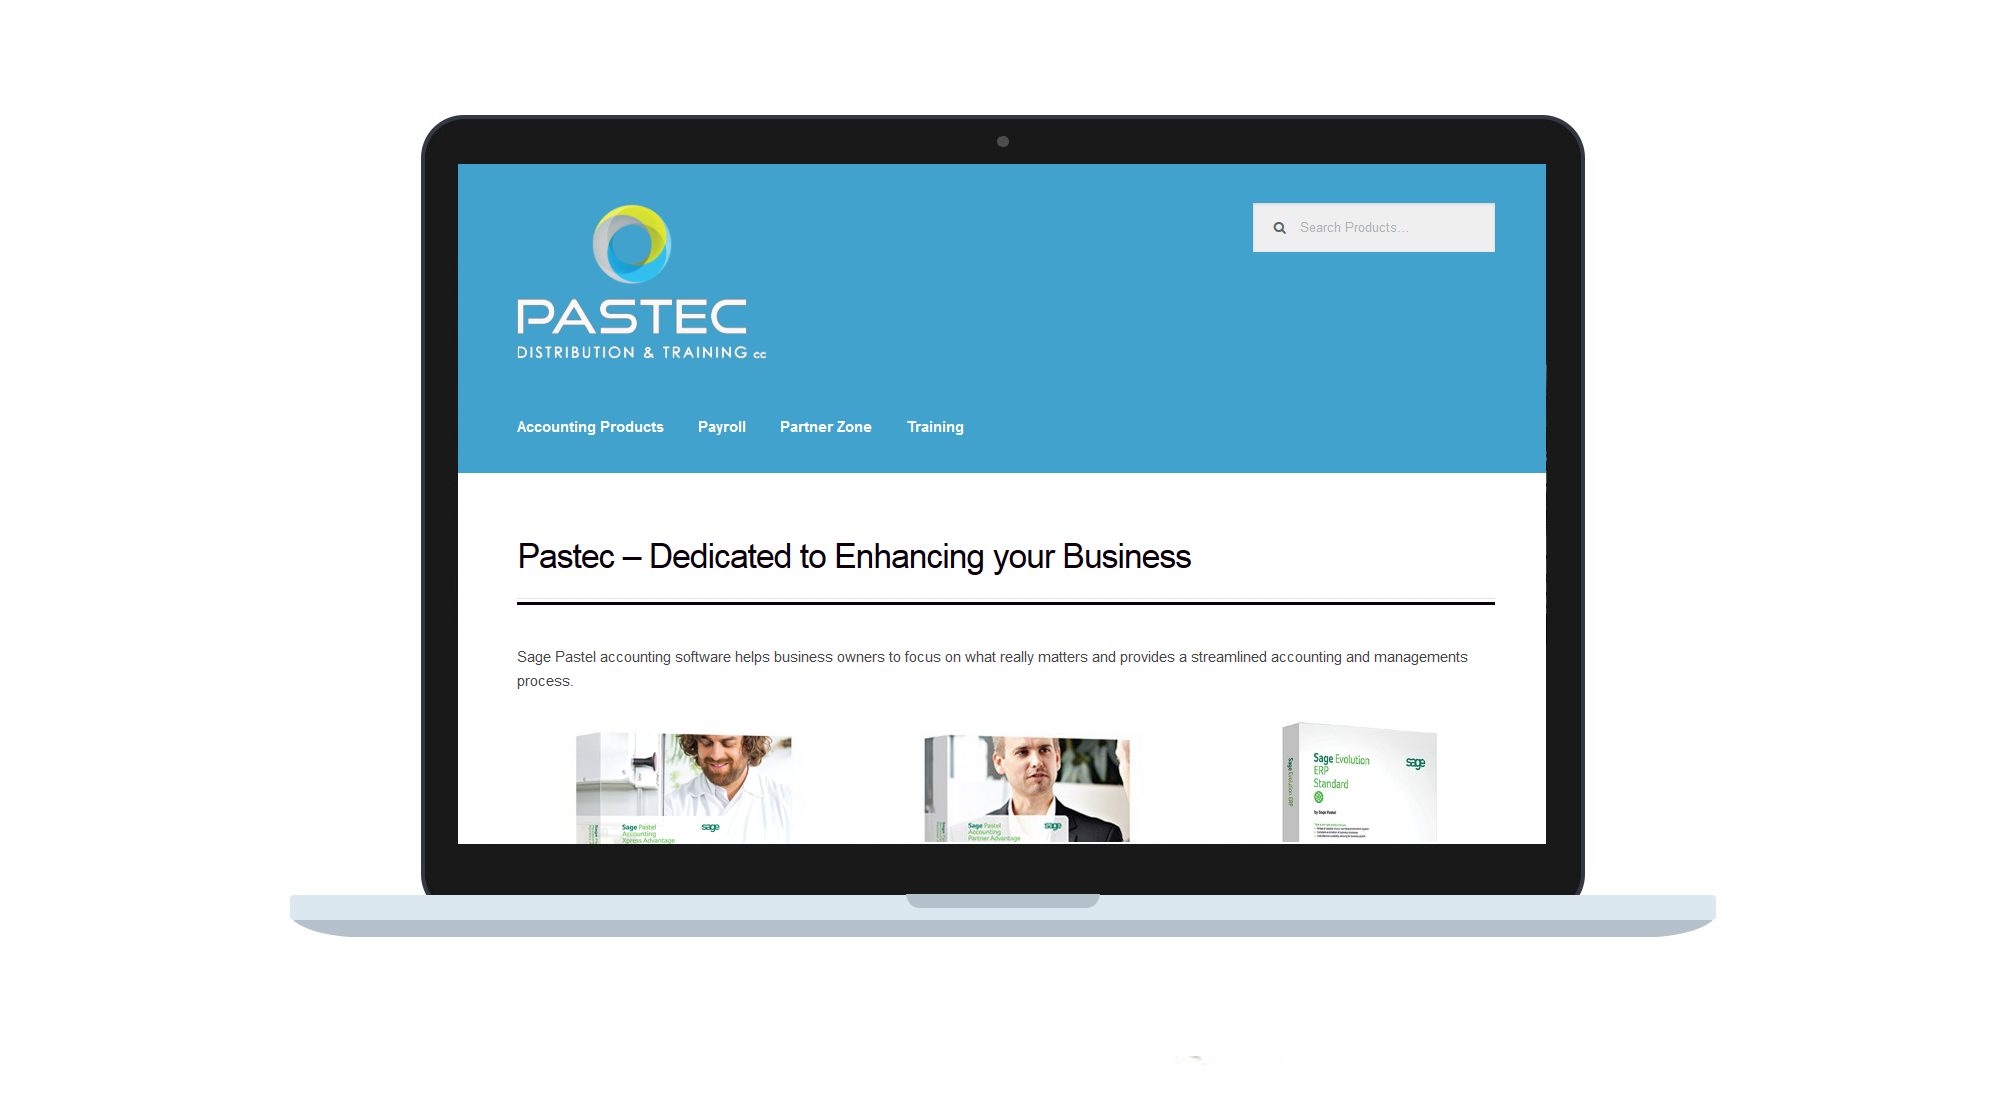 Pastec Distribution and Training